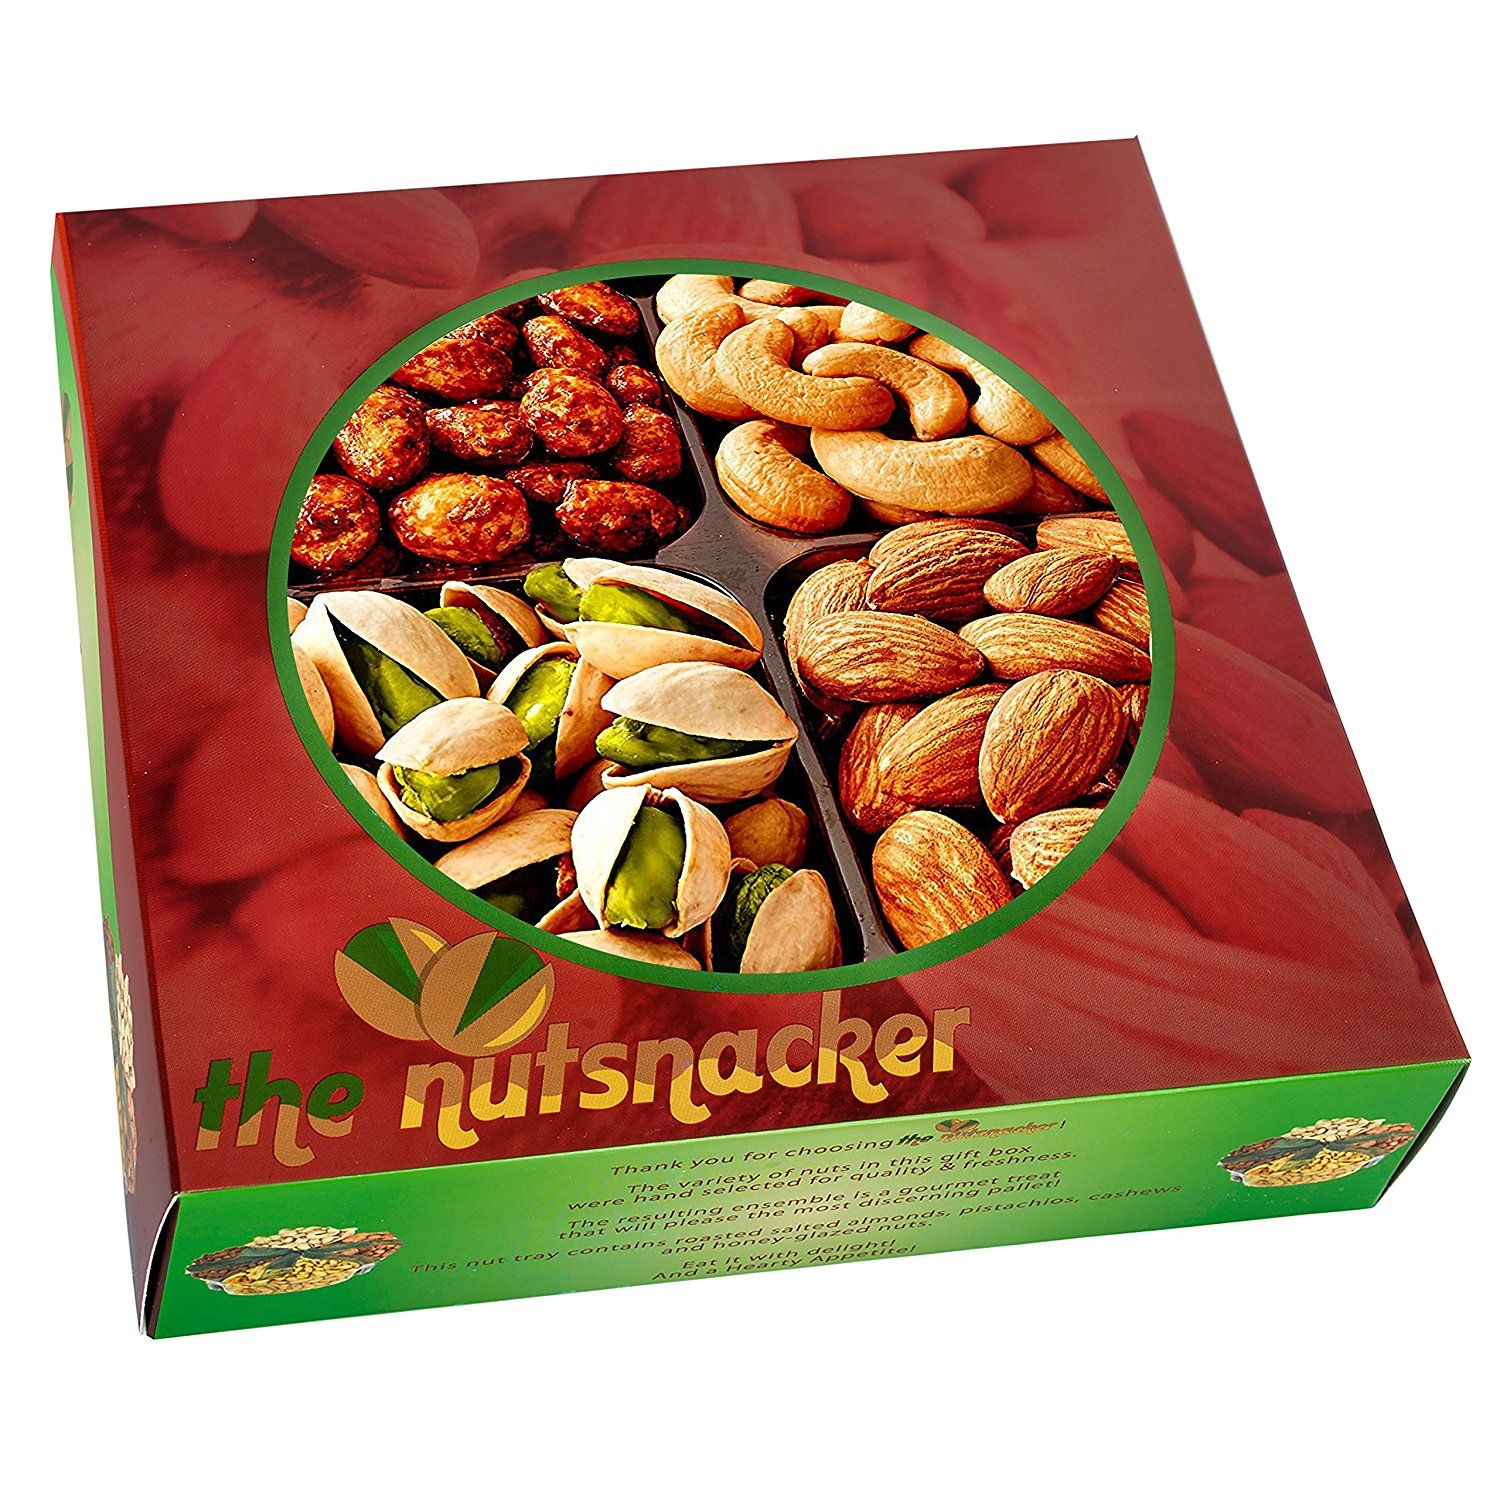 The Nutsnacker Delicious Roasted Healthy Nuts Christmas ...